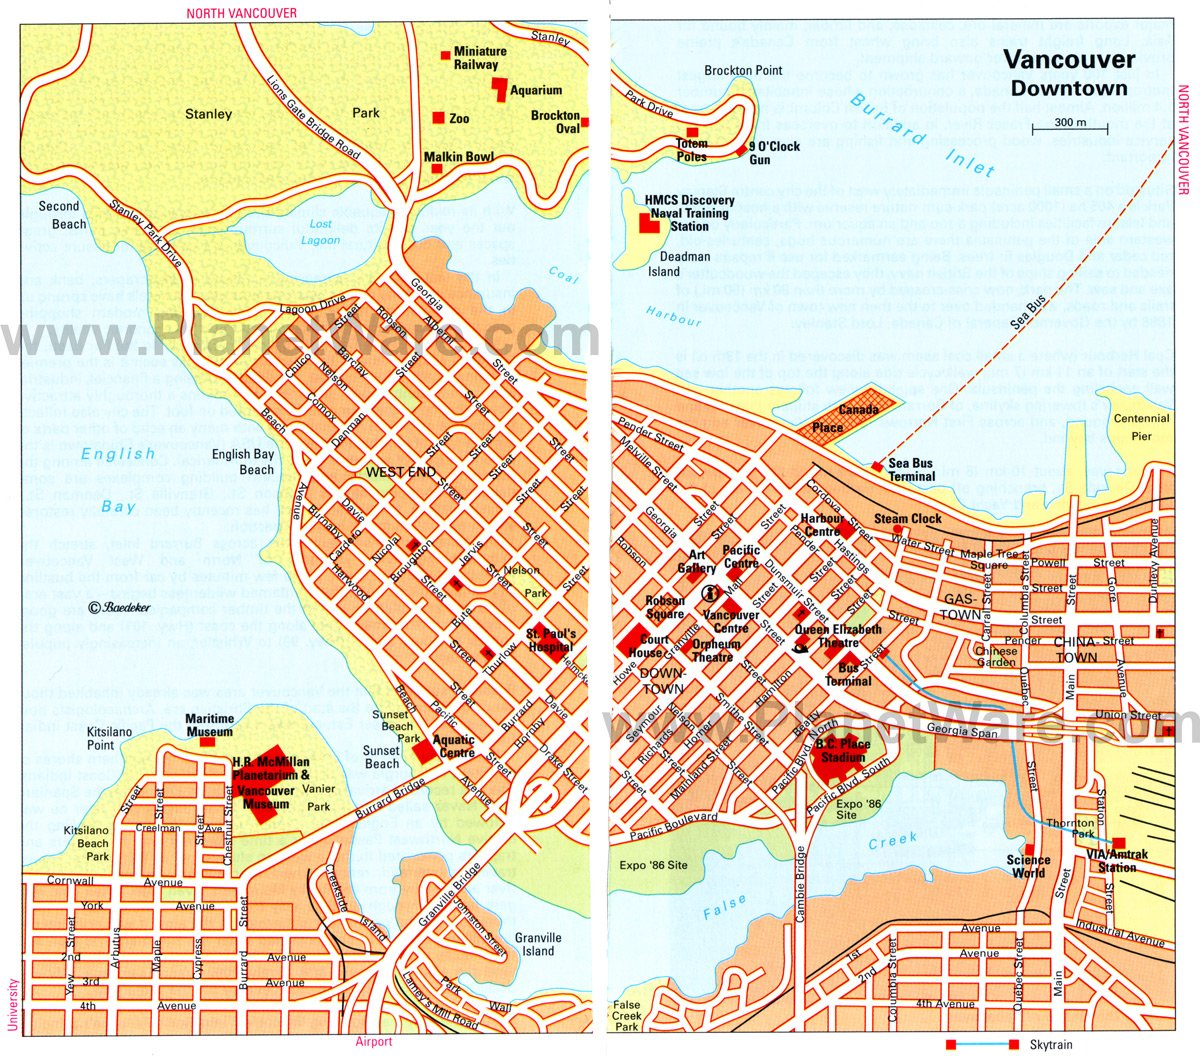 15 TopRated Tourist Attractions in Vancouver – Portland Tourist Map